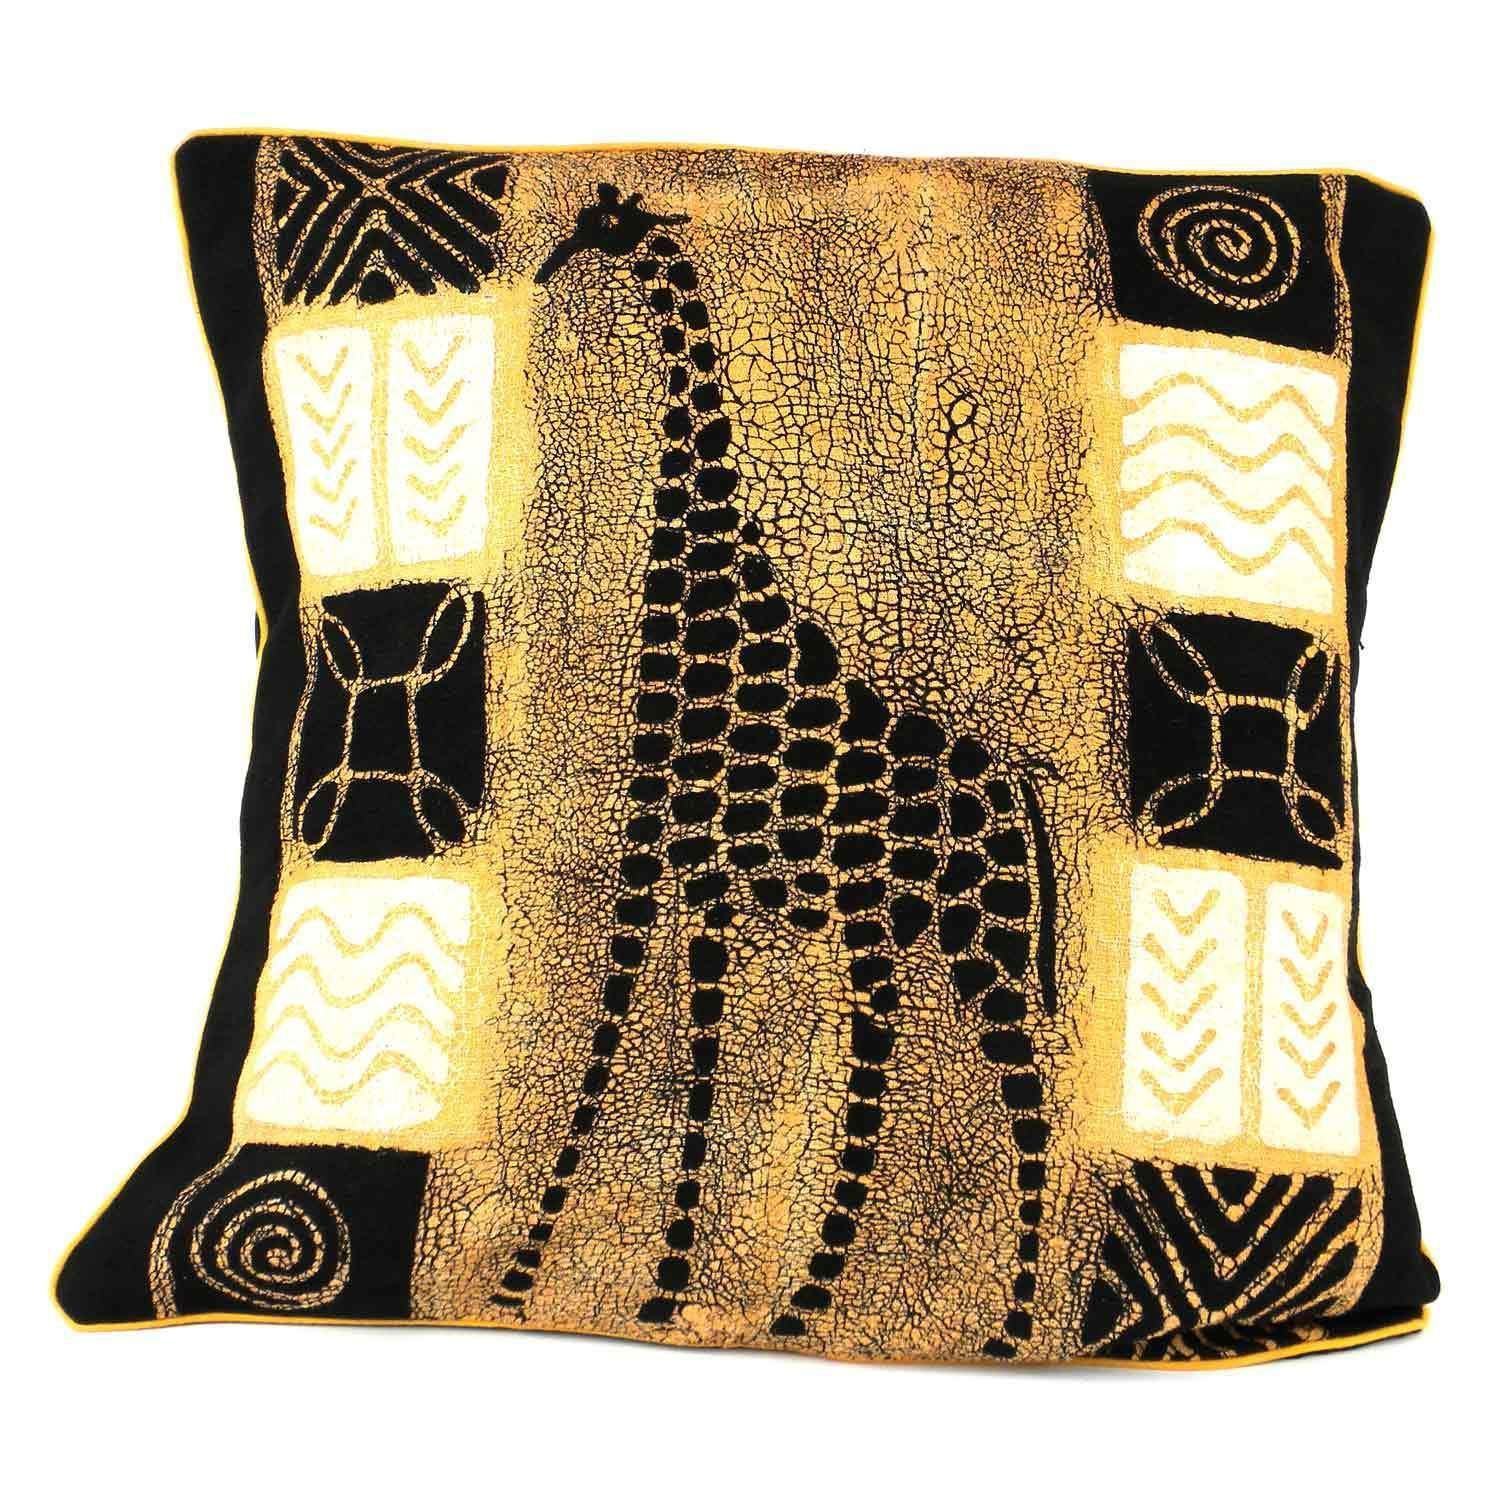 Global Crafts Handmade Giraffe Design Batik Cushion Cover Zimbabwe Black and White Giraffe Batik Cushion Cover Size 17 x 17 Cotton Animal